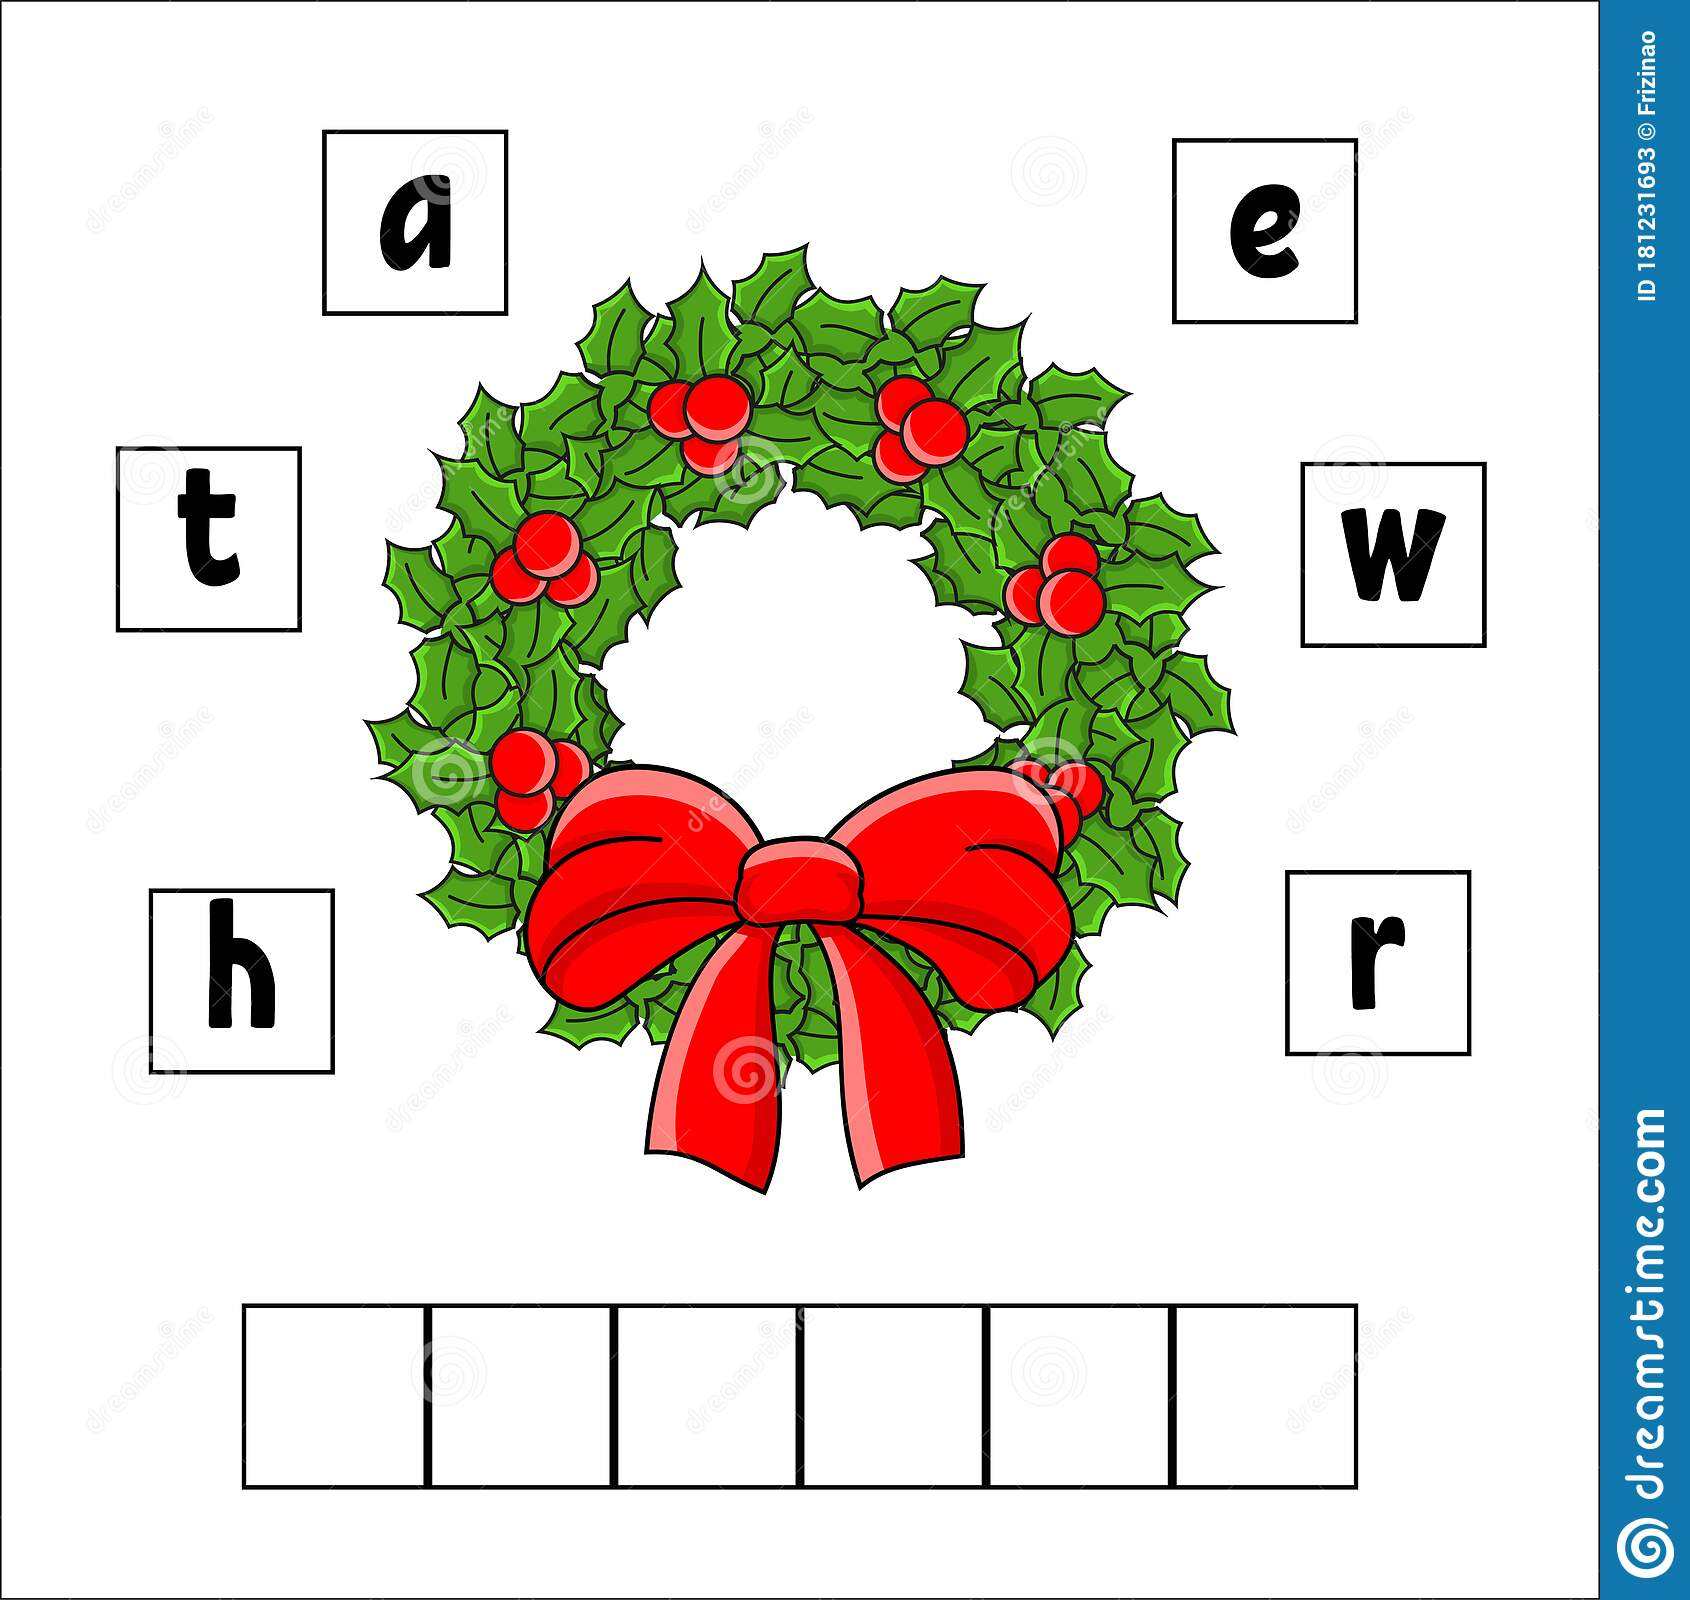 Words Puzzle Wreath Education Developing Worksheet